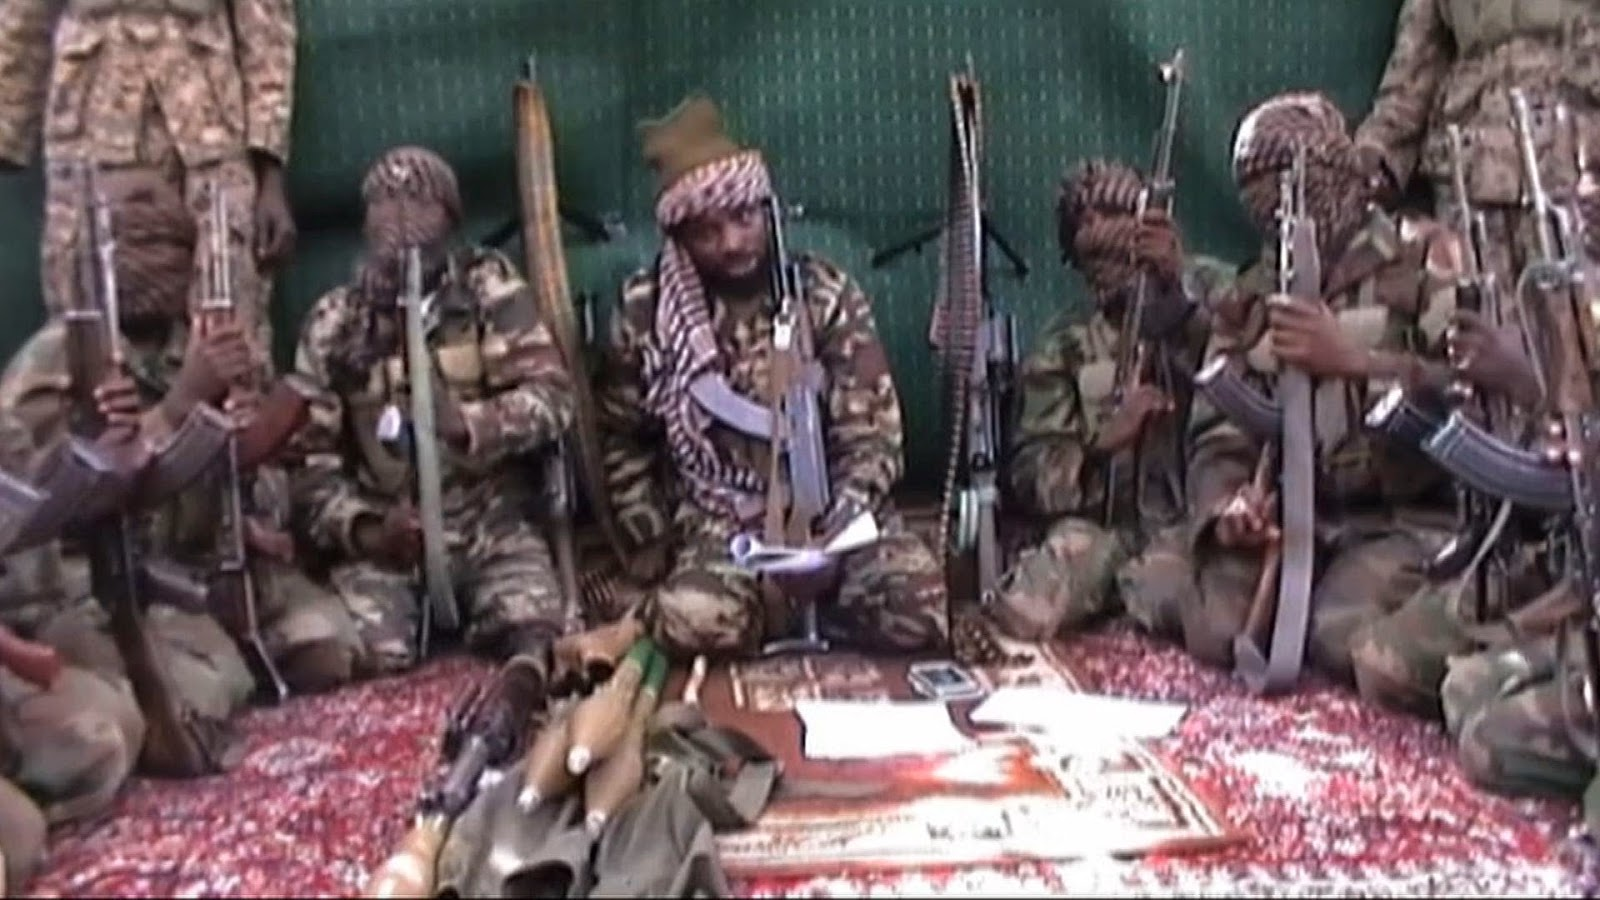 12 worshippers, 6 militants killed in Borno Church Attack by Boko Haram